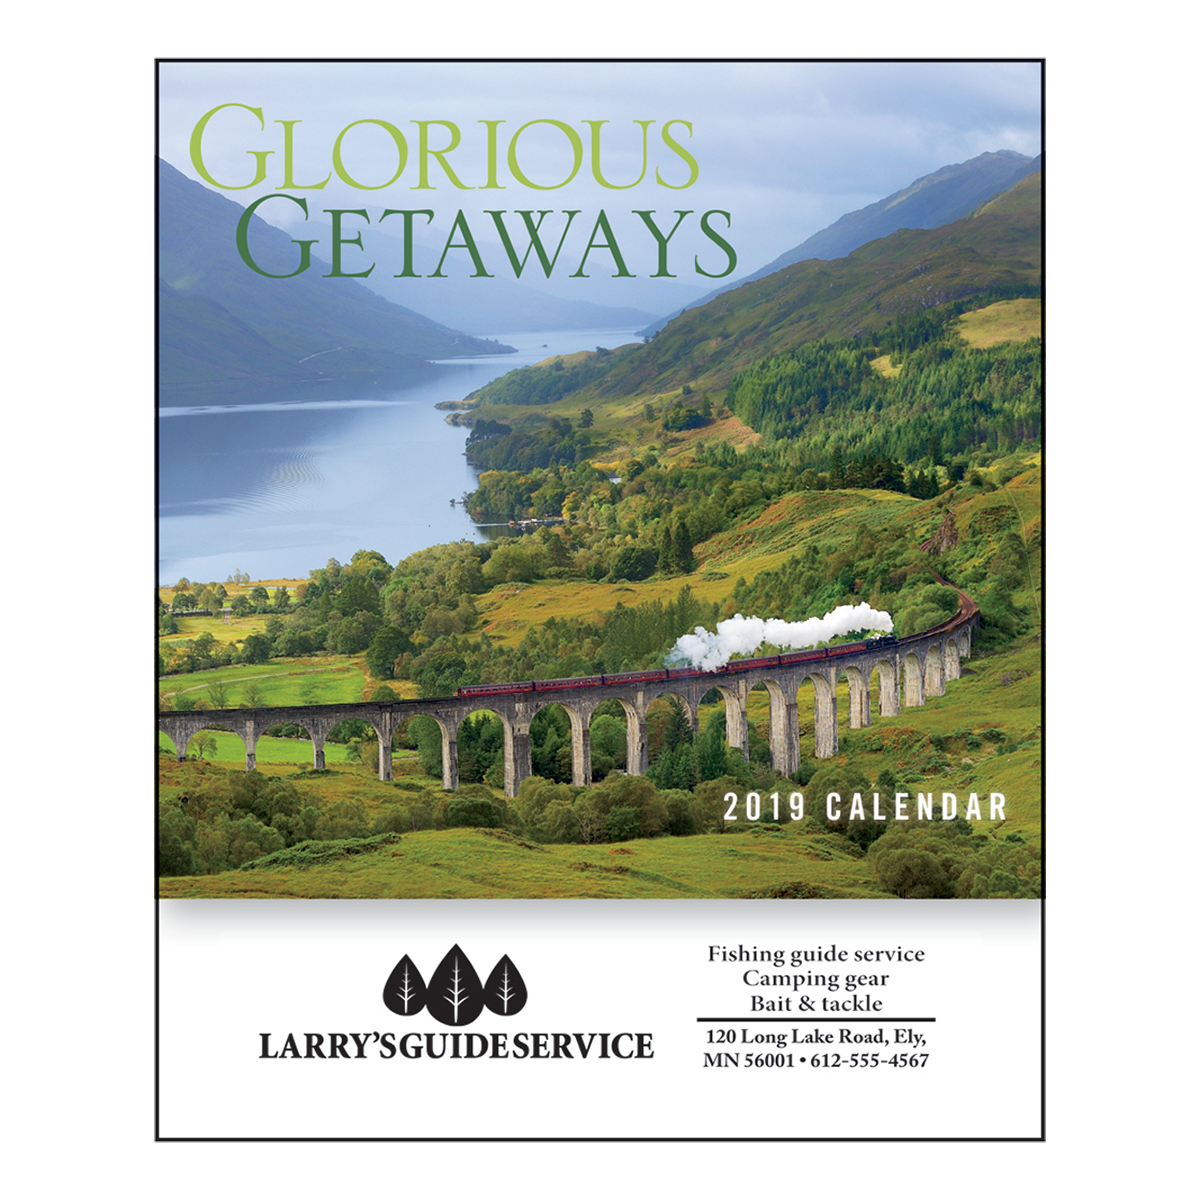 glorious getaways mini wall calendar | mines press